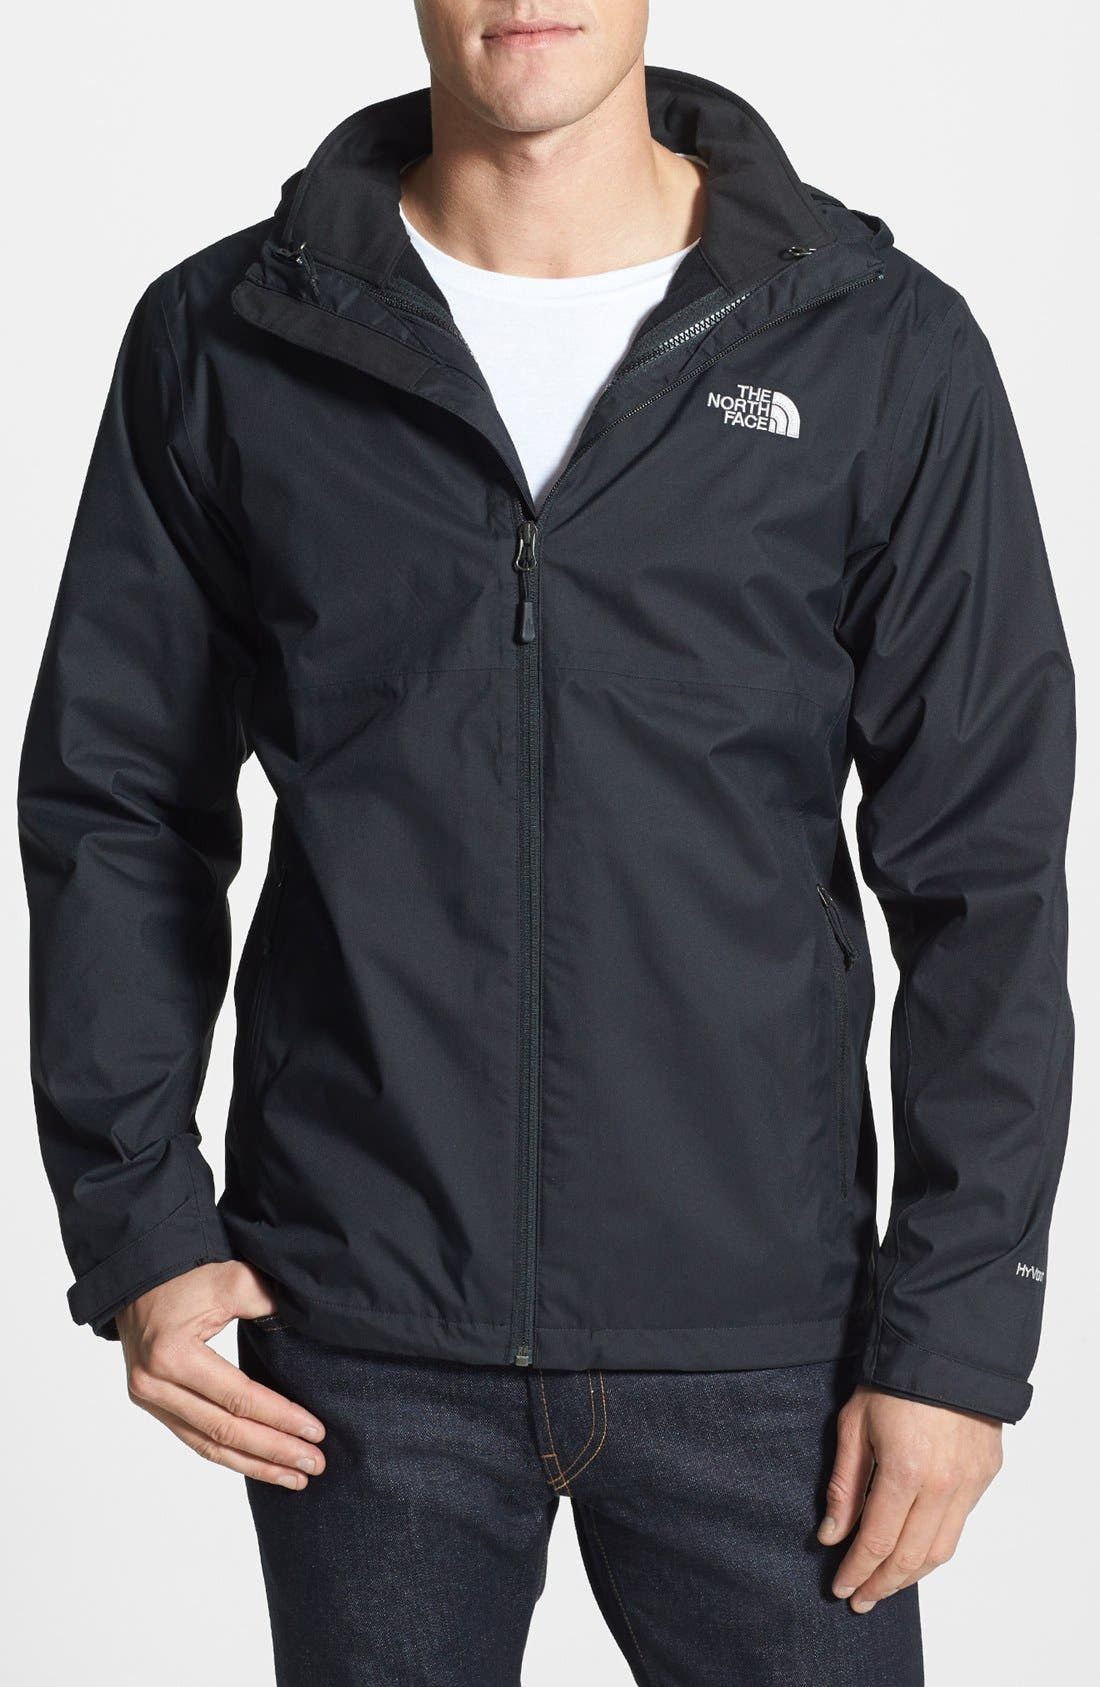 THE NORTH FACE 'Momentum TriClimate' 3-in-1 Waterproof Hooded Jacket, Main, color, 001